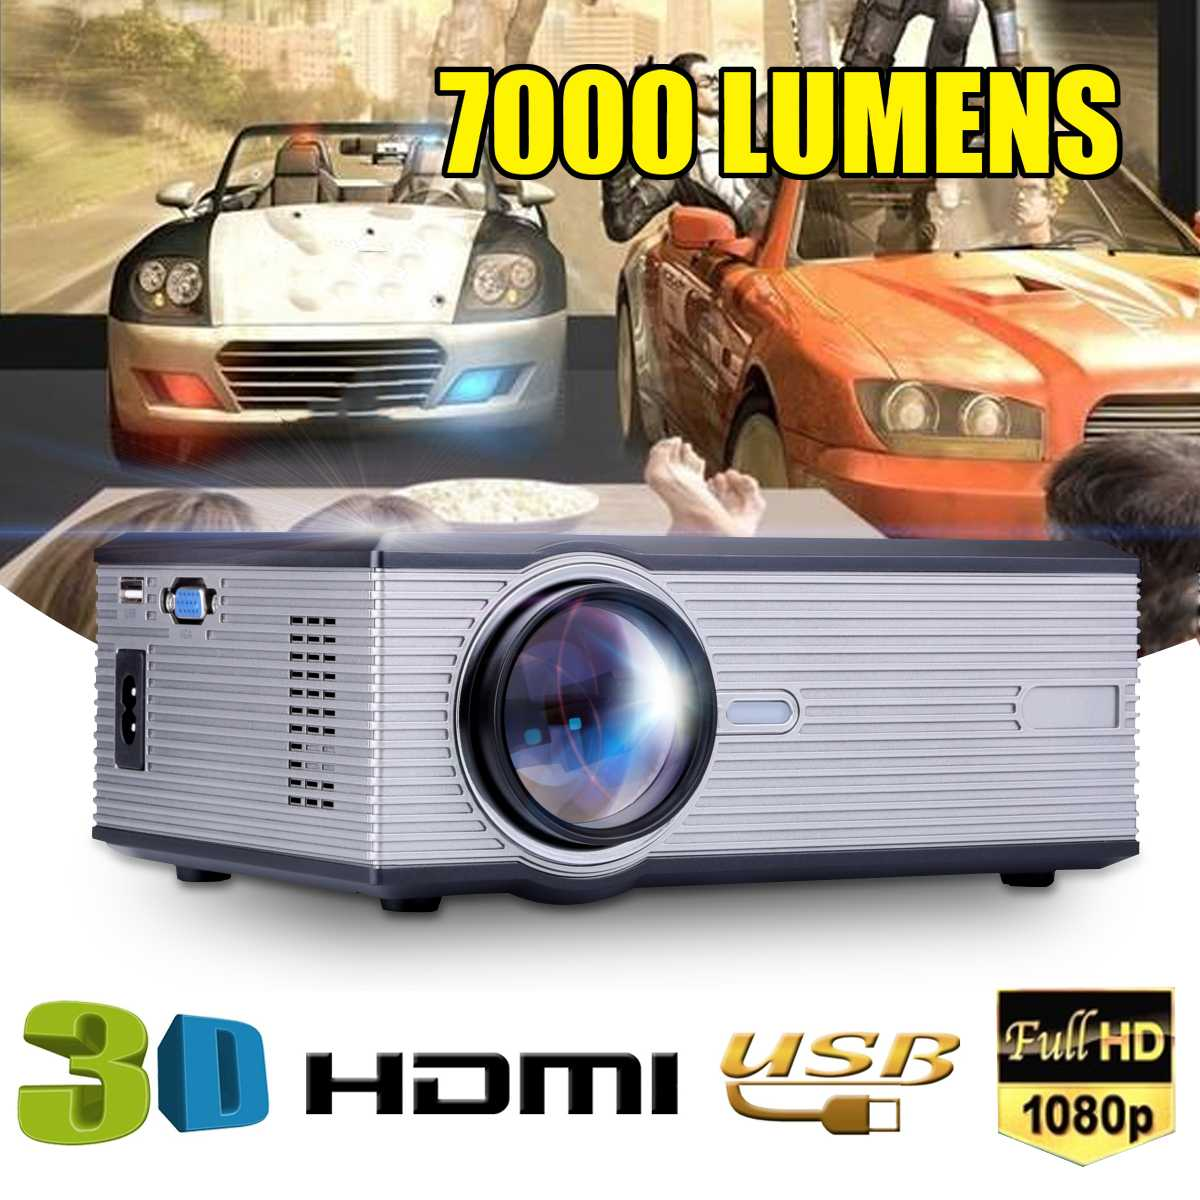 Mini 7000 Lumens 1080P LED Video Projector for Home Theatersupport Full HD Mini projector HDMI/USB/SD/AV/VGA HOME CINEMAMini 7000 Lumens 1080P LED Video Projector for Home Theatersupport Full HD Mini projector HDMI/USB/SD/AV/VGA HOME CINEMA